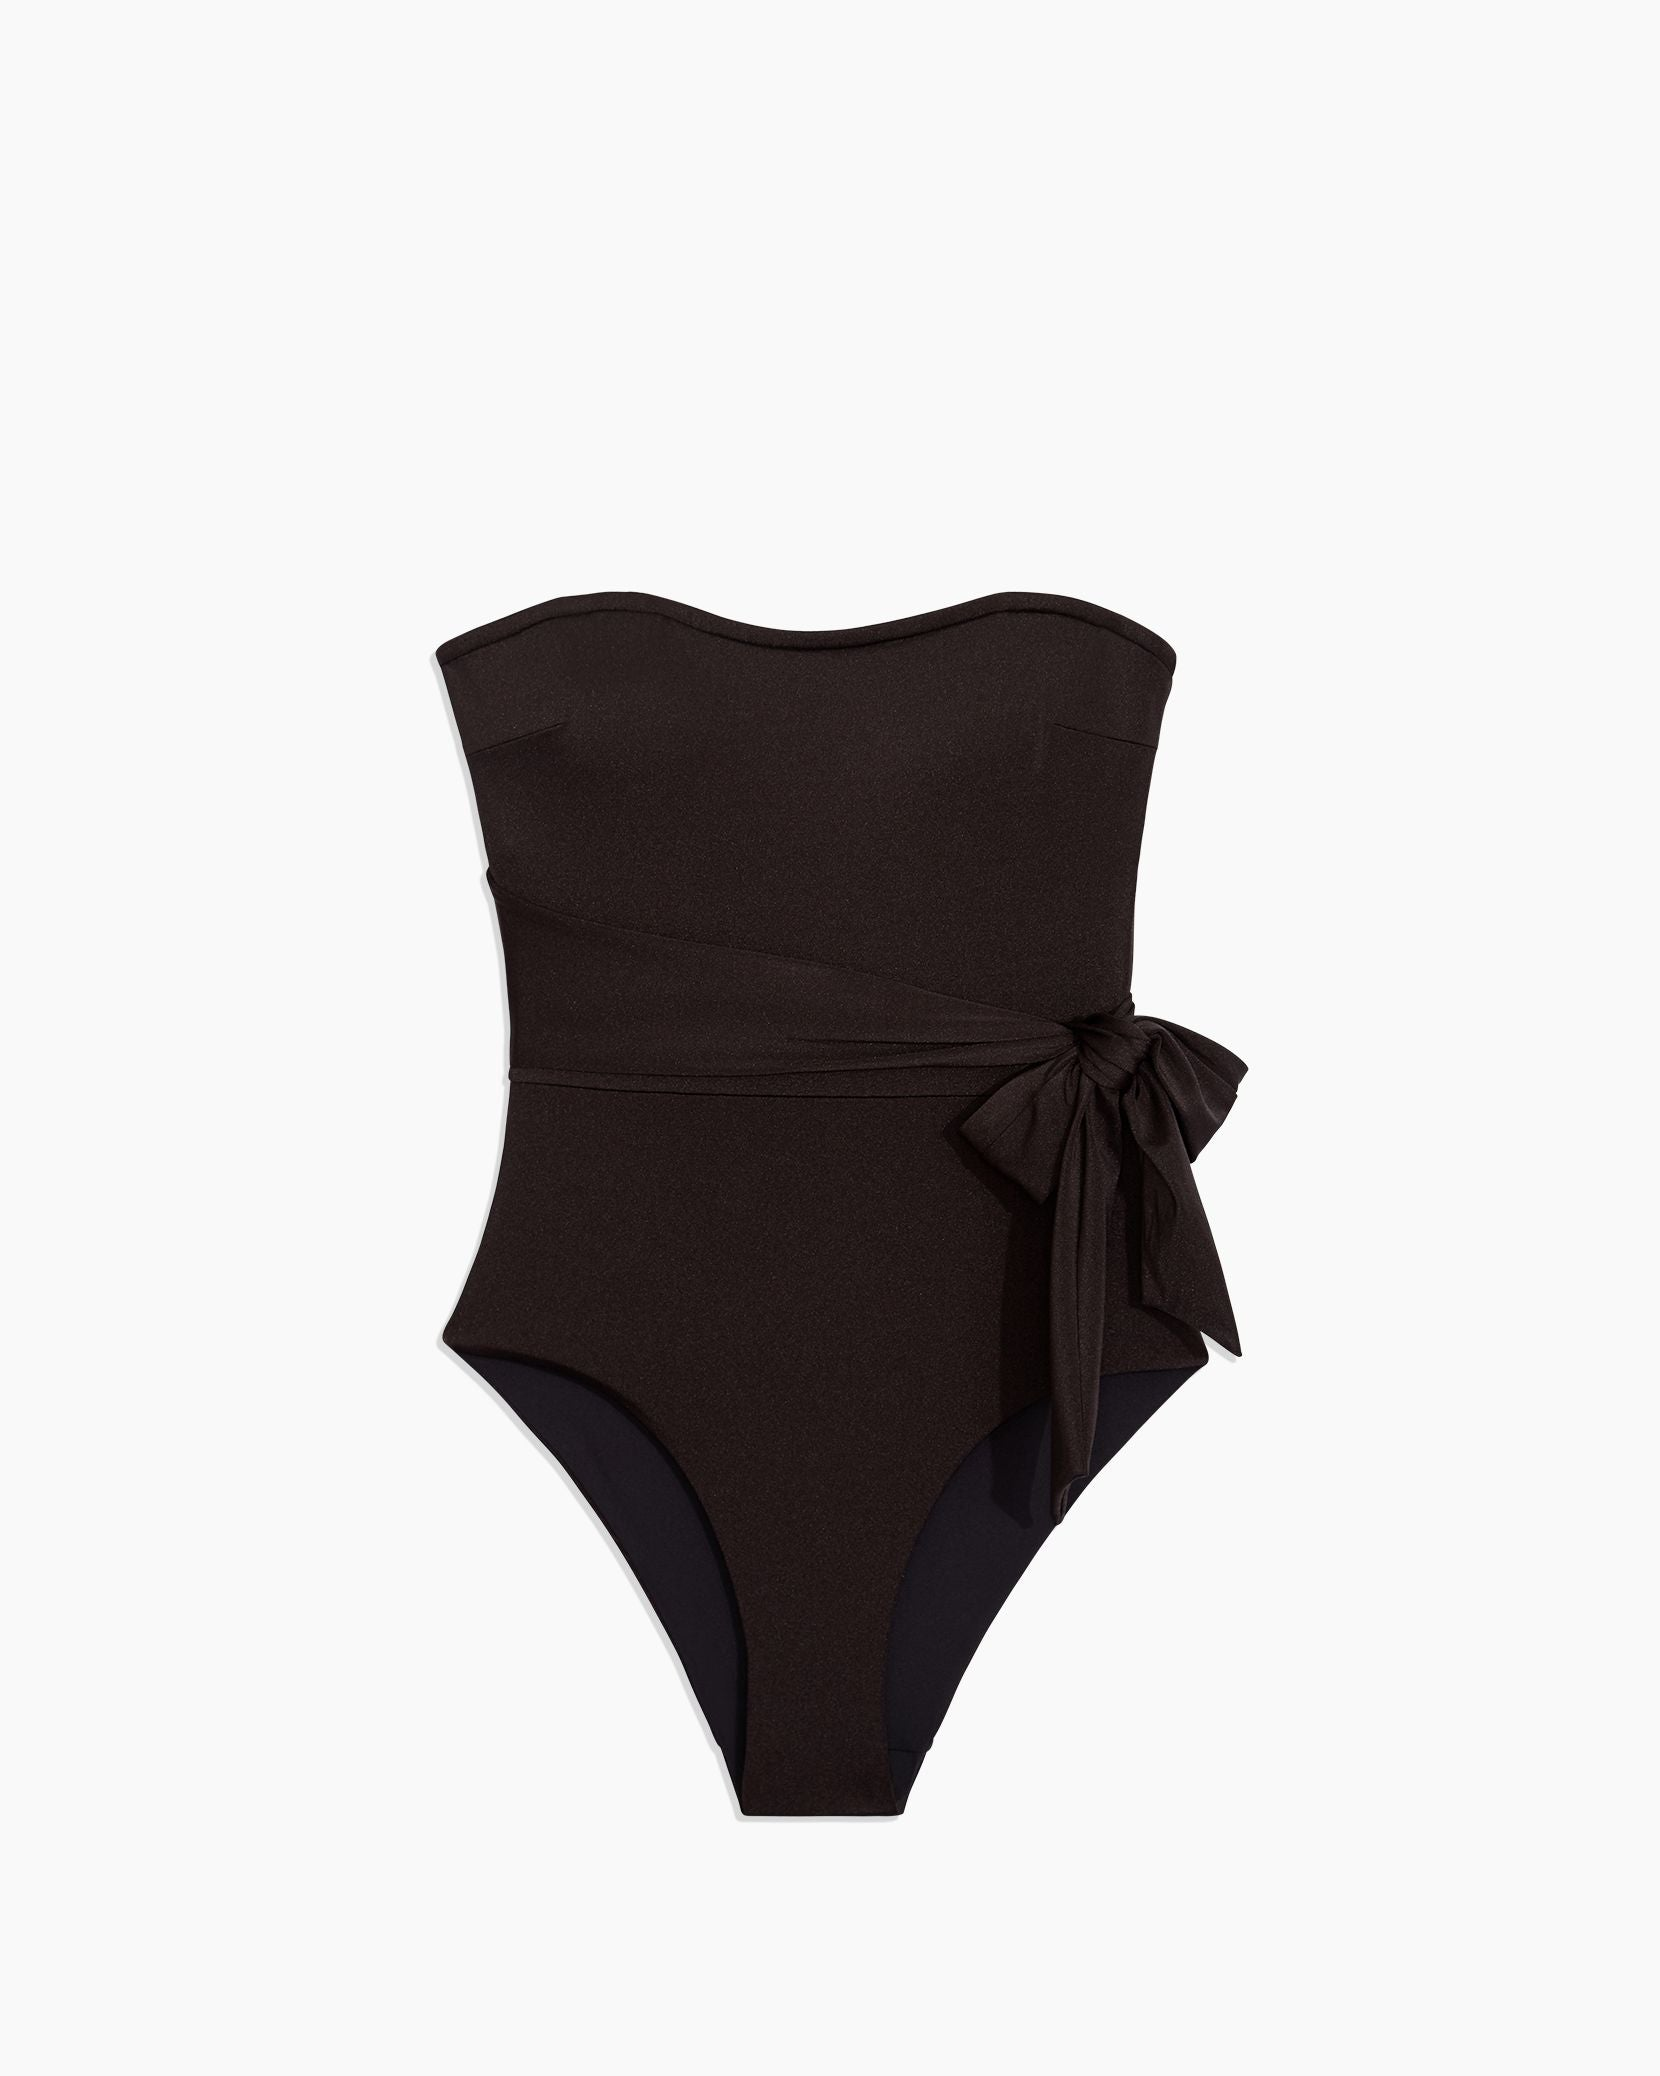 Charlotte One Piece in Metallic Solid Black - 6 - Onia